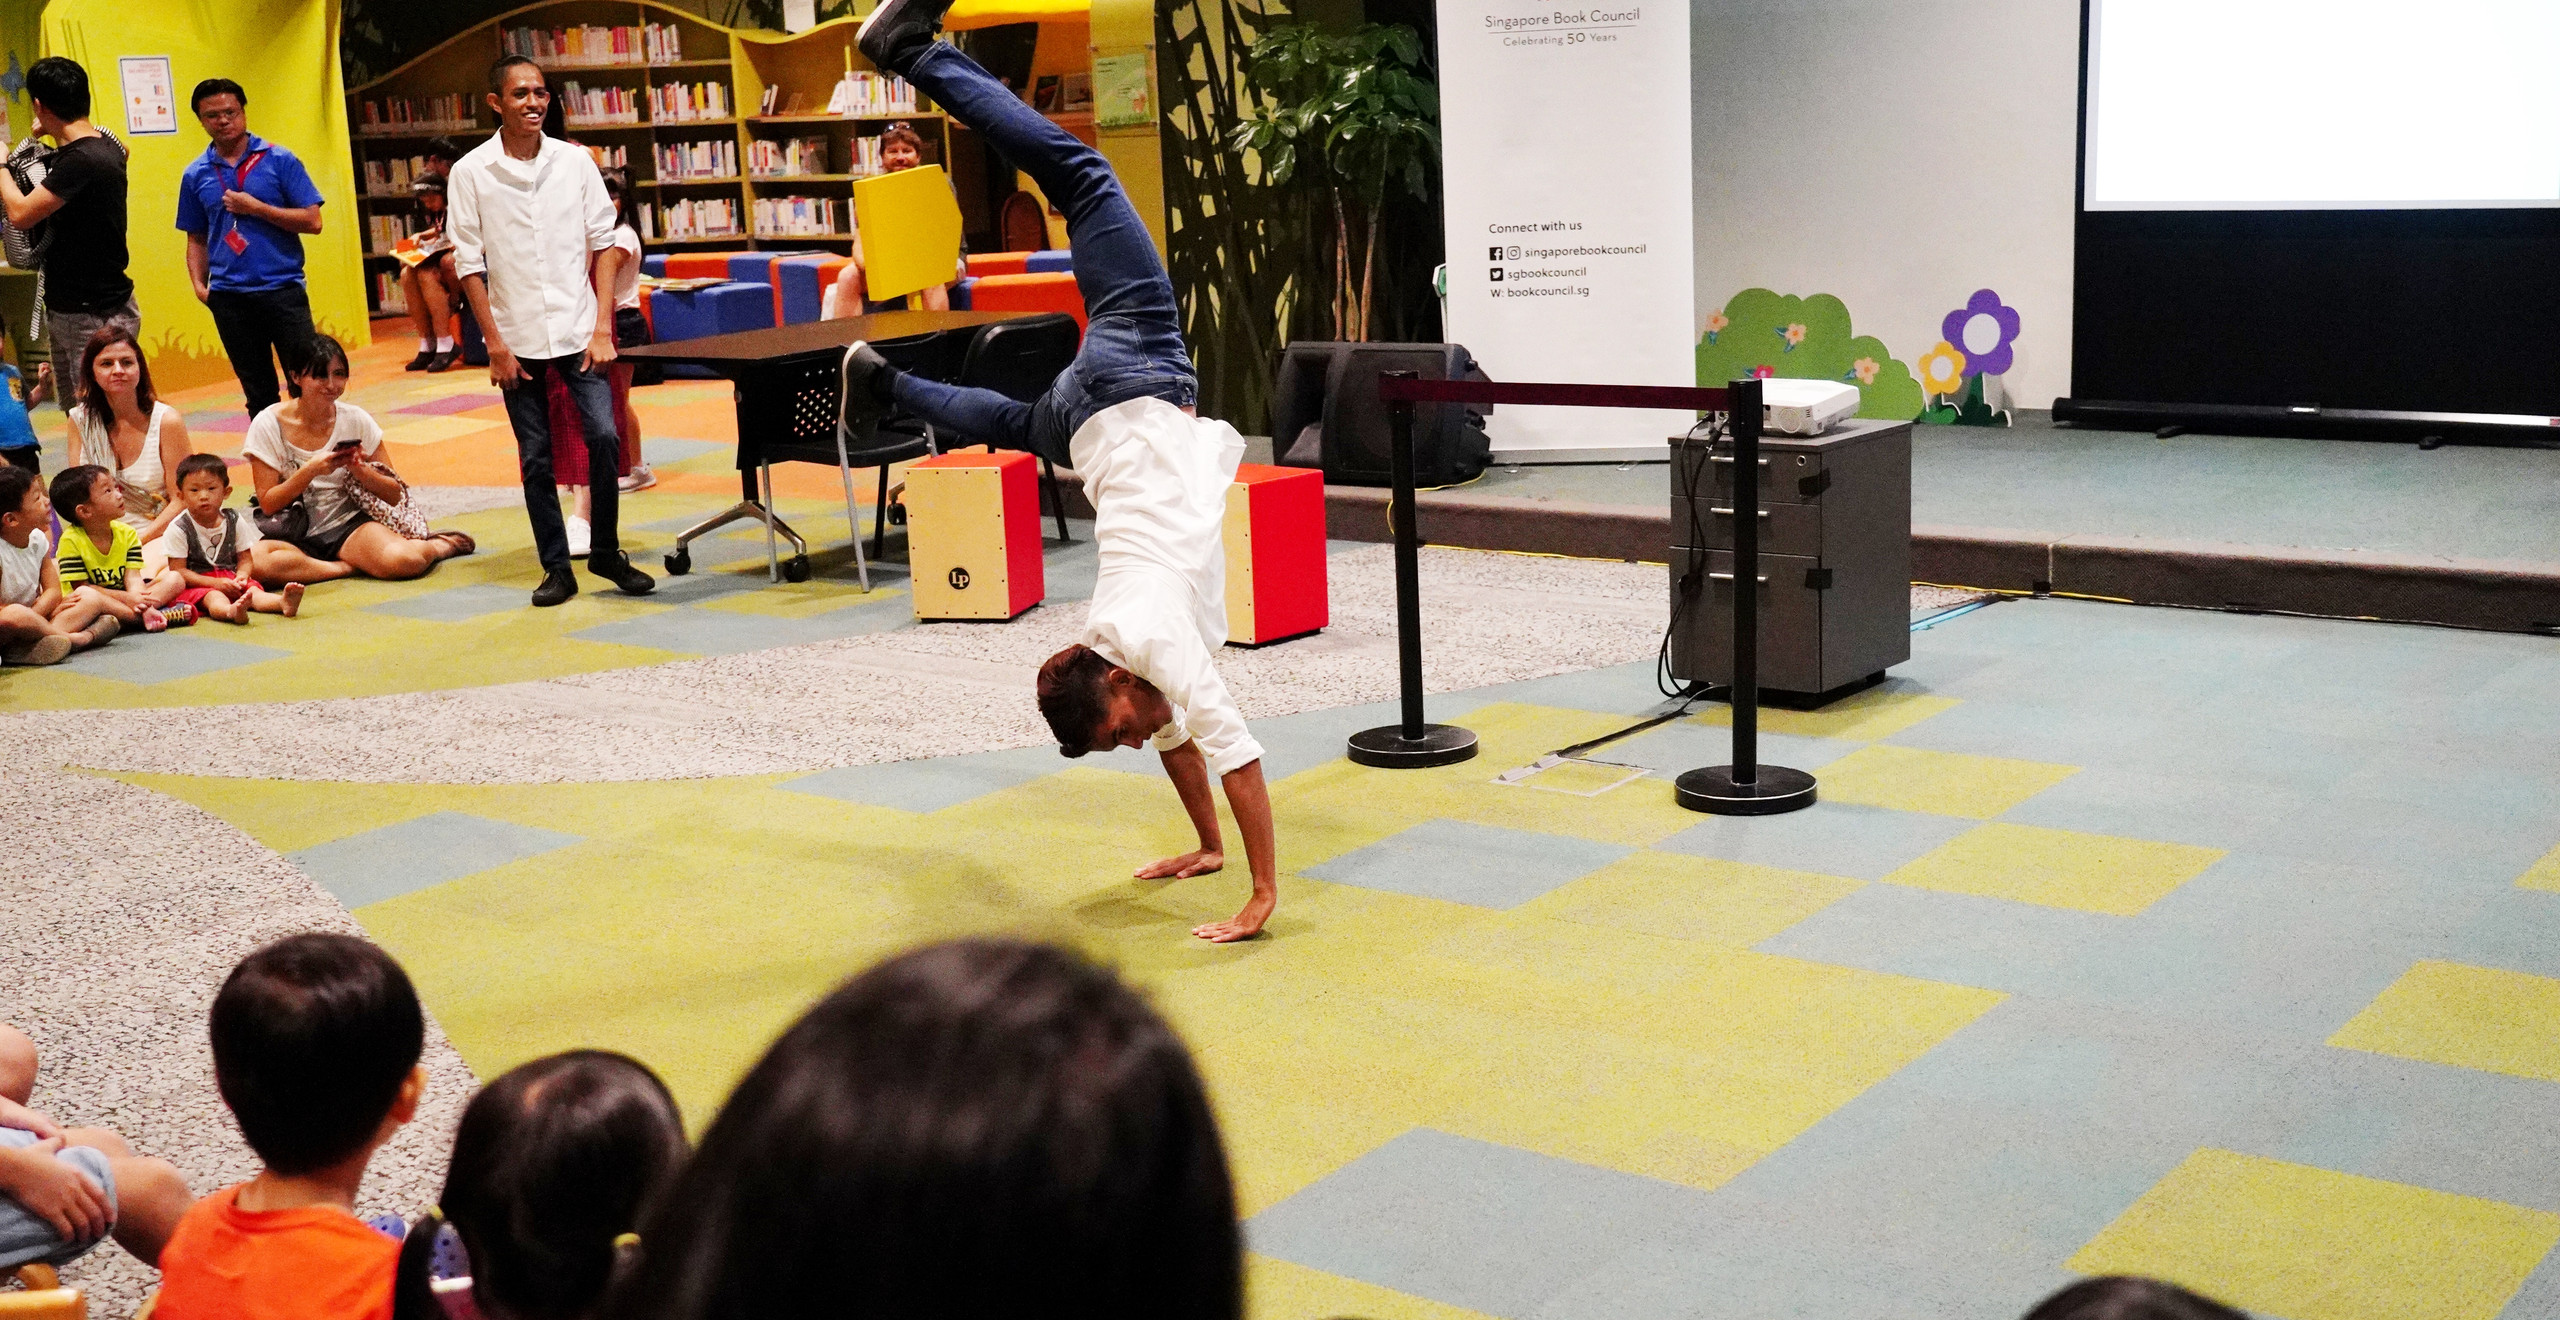 Breakdancing in the library